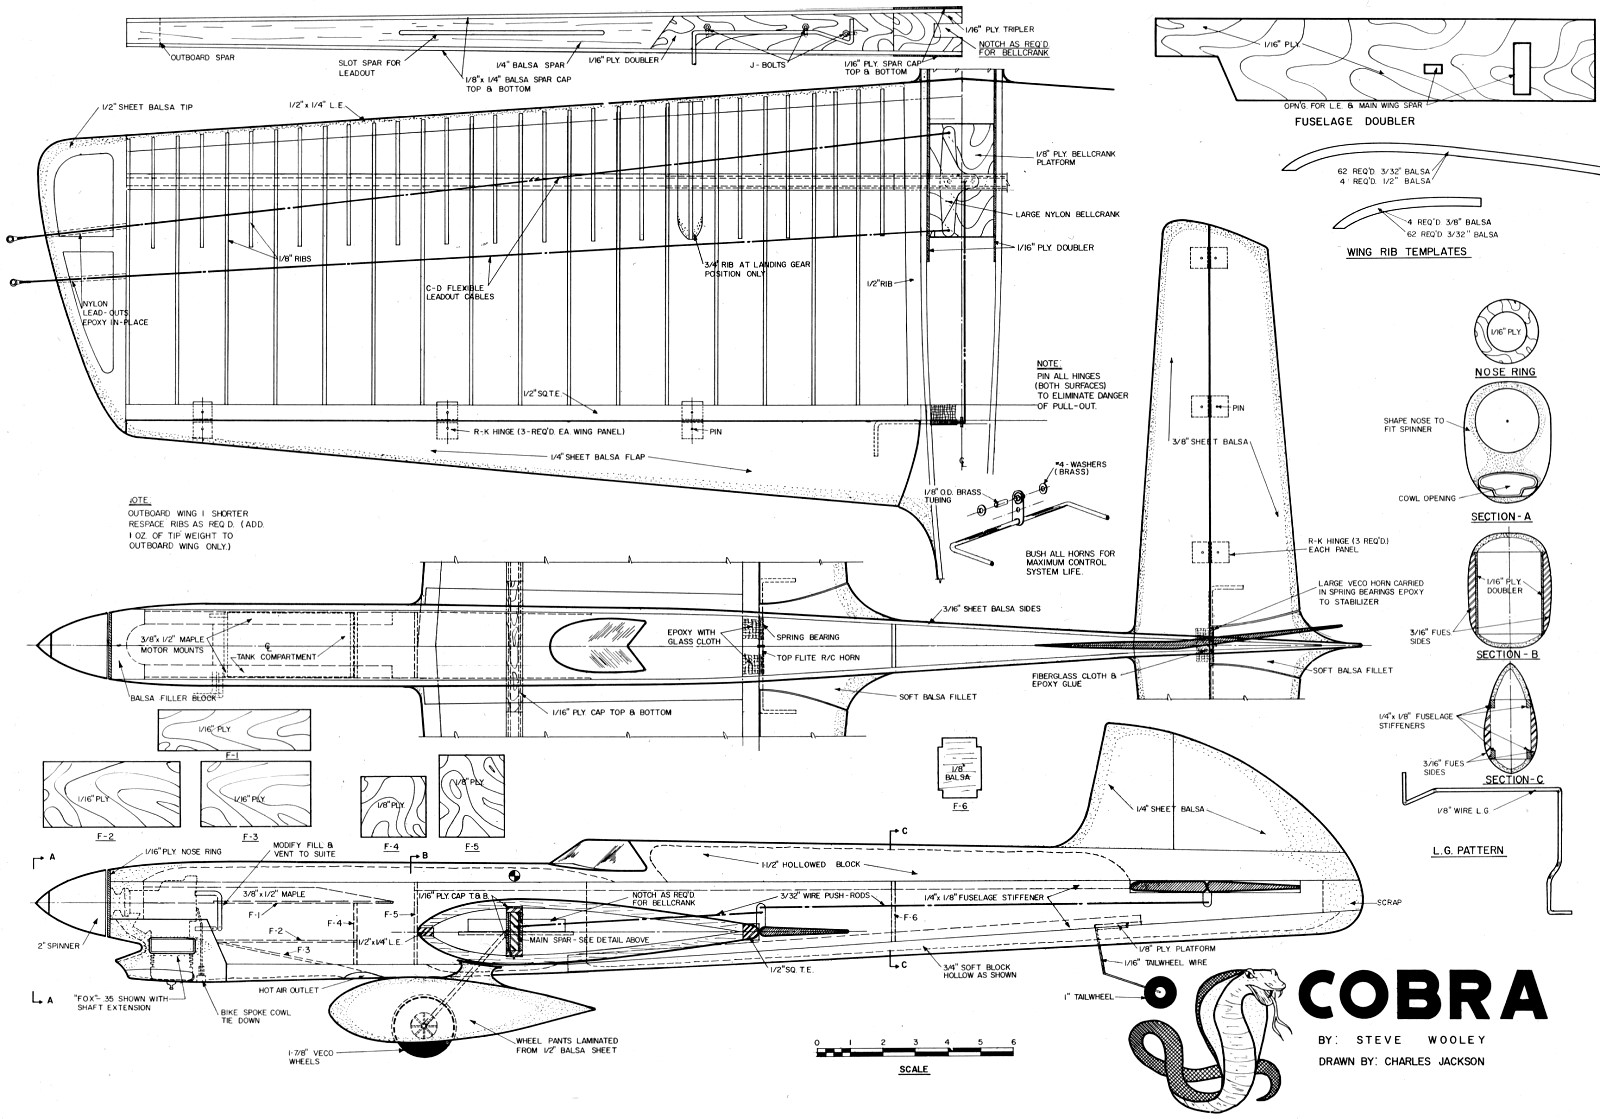 Cobra February American Aircraft Modeler